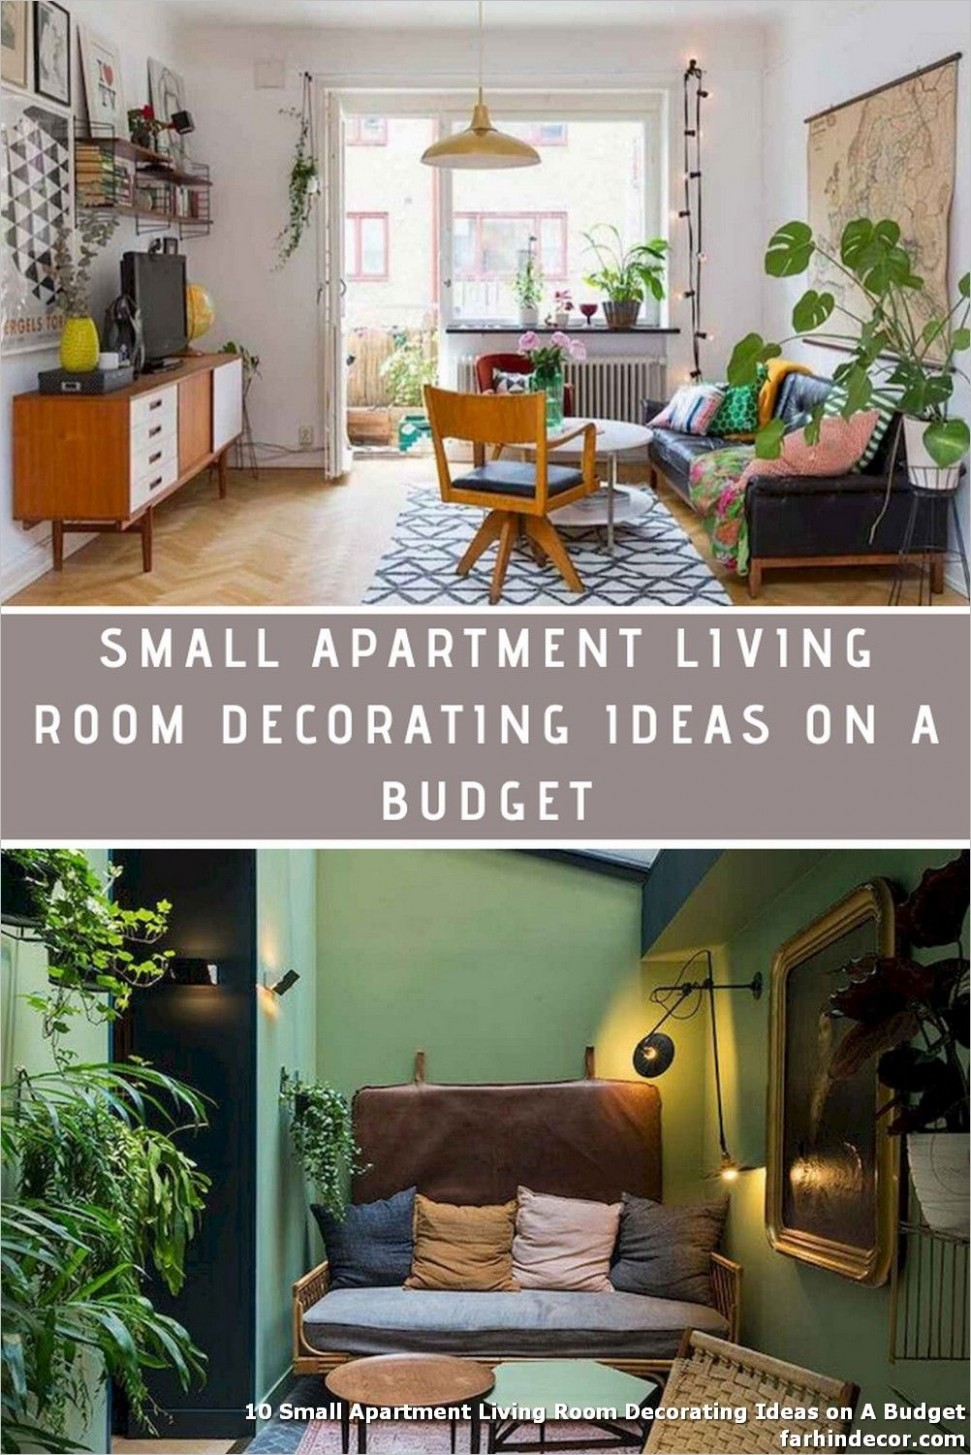 8 Small Apartment Living Room Decorating Ideas on A Budget  - Apartment Design Brief